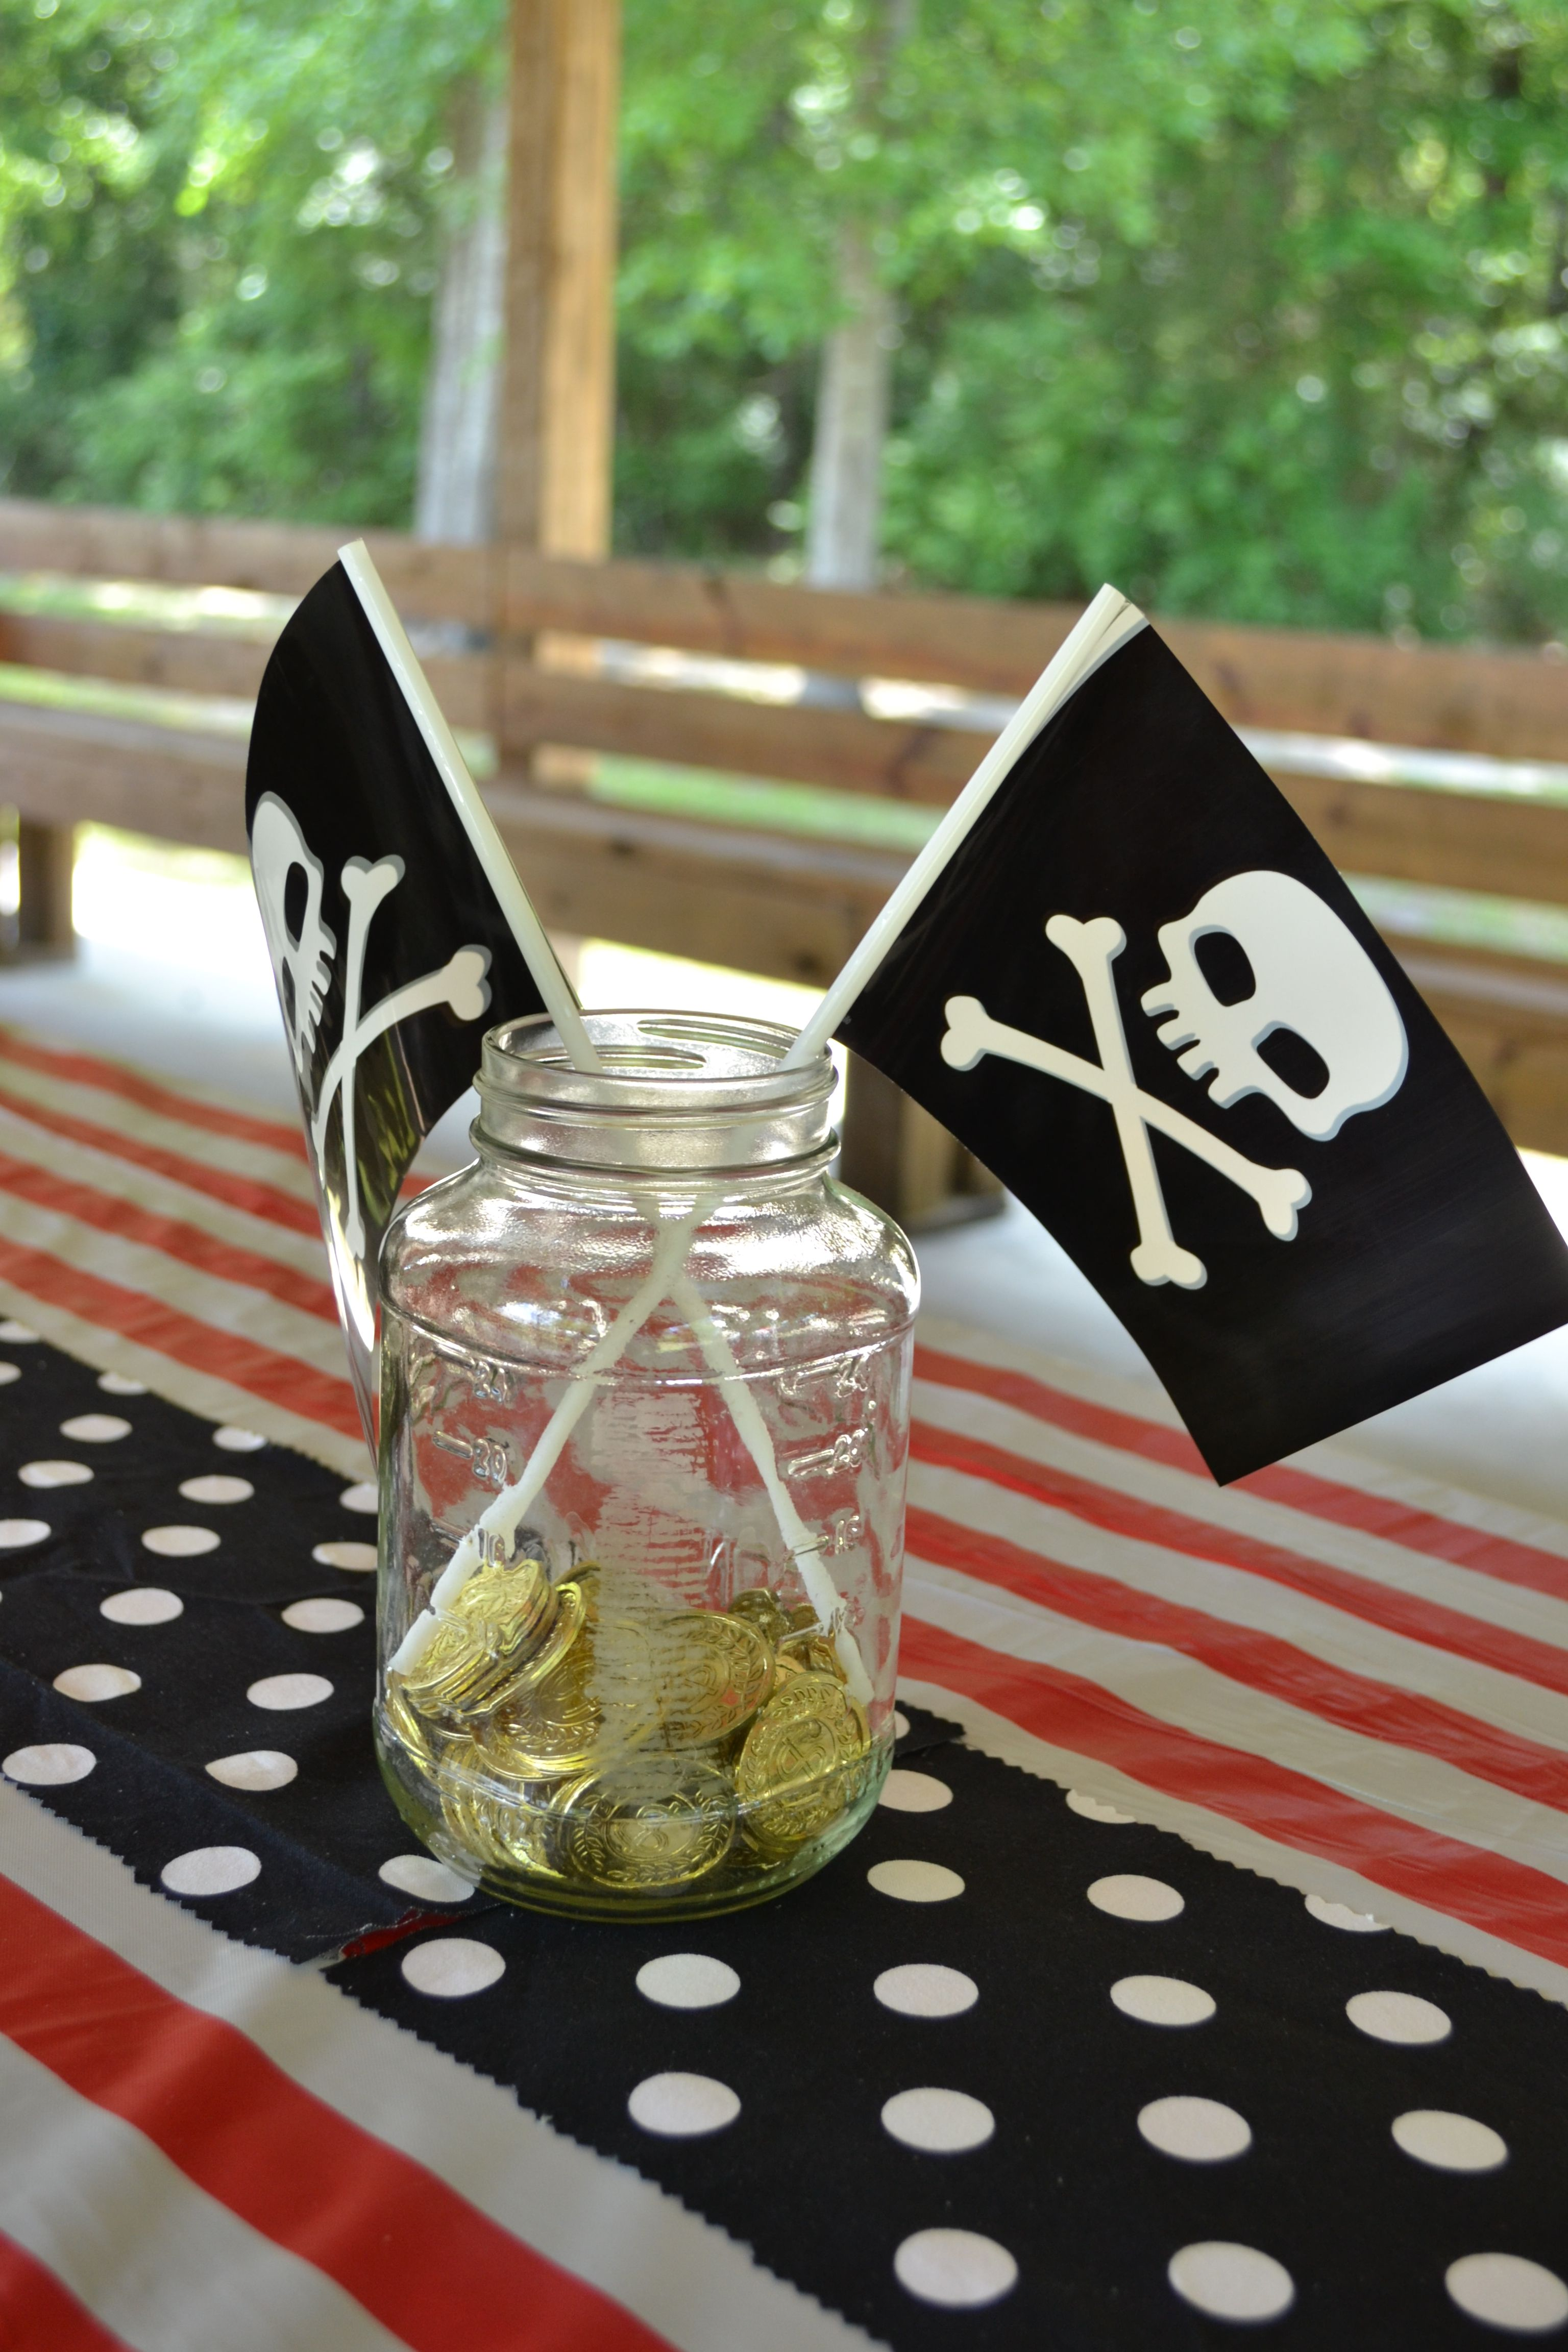 Pirate Party Mason Jar Centerpieces with